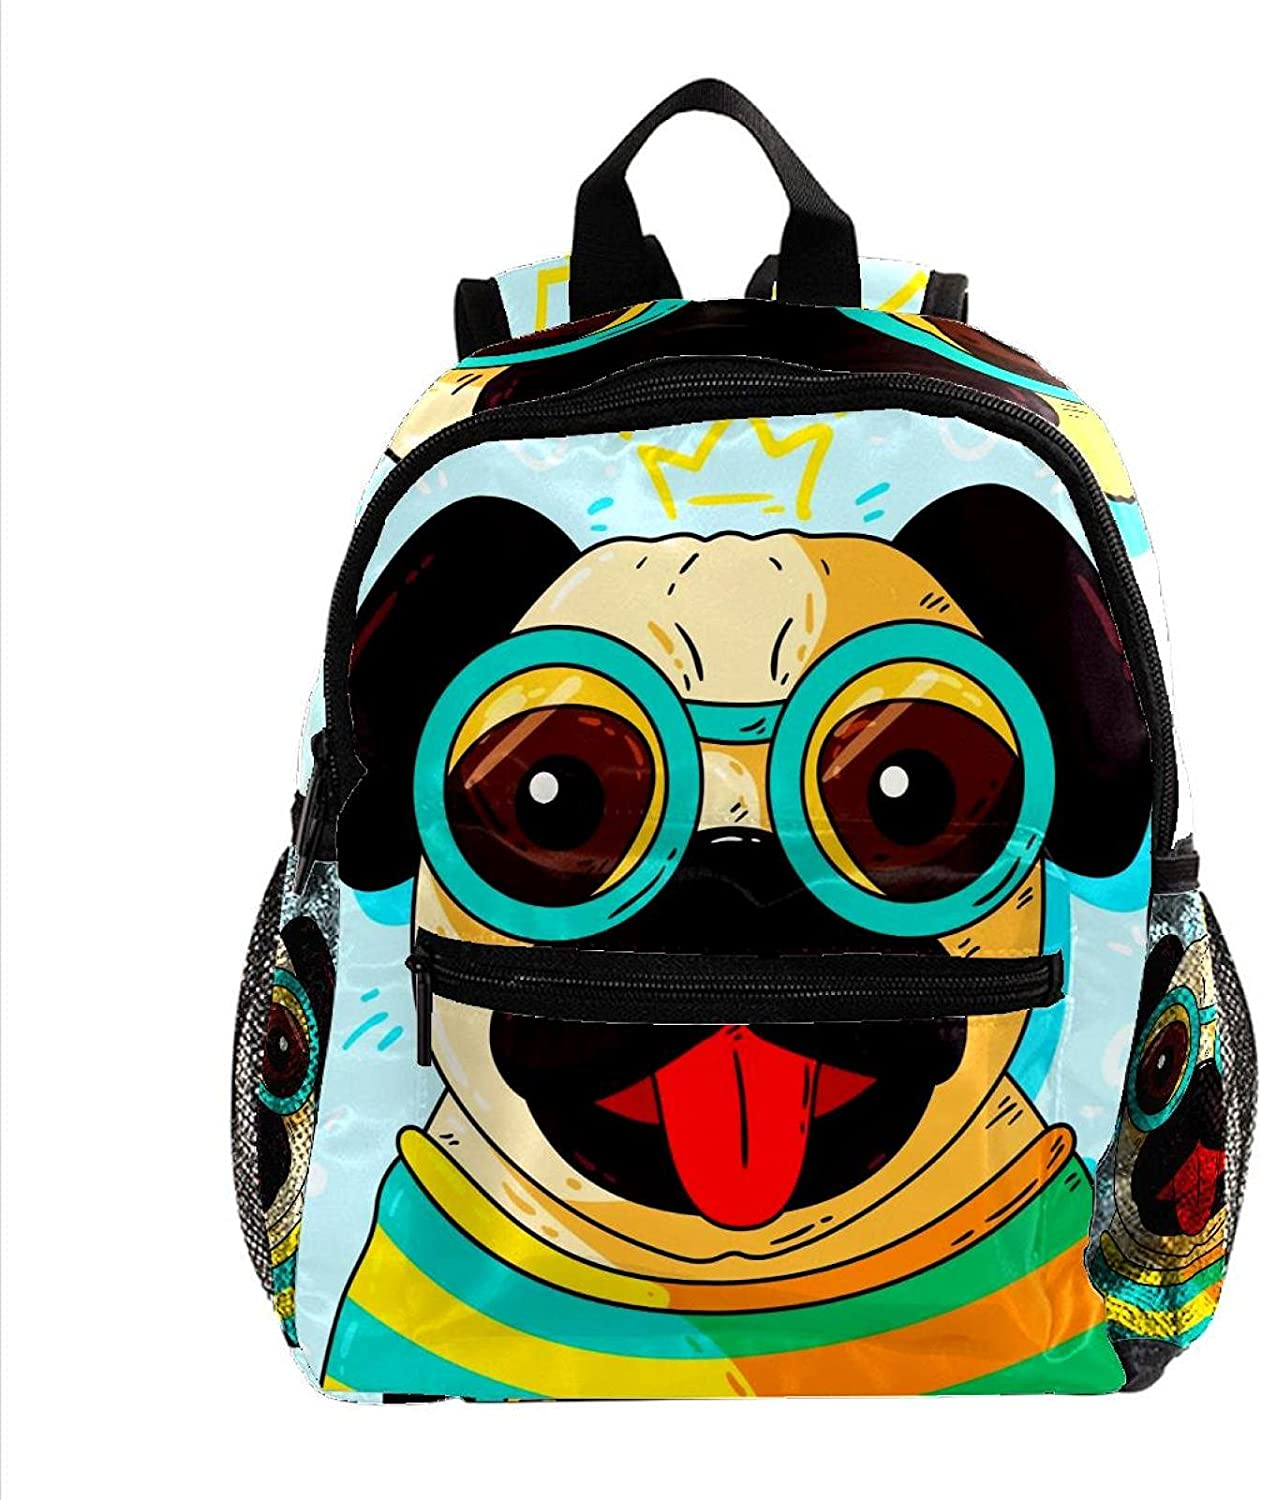 Dog Pug Blue Small Toddler Bookb Daypack School Travel List price Easy-to-use Backpack